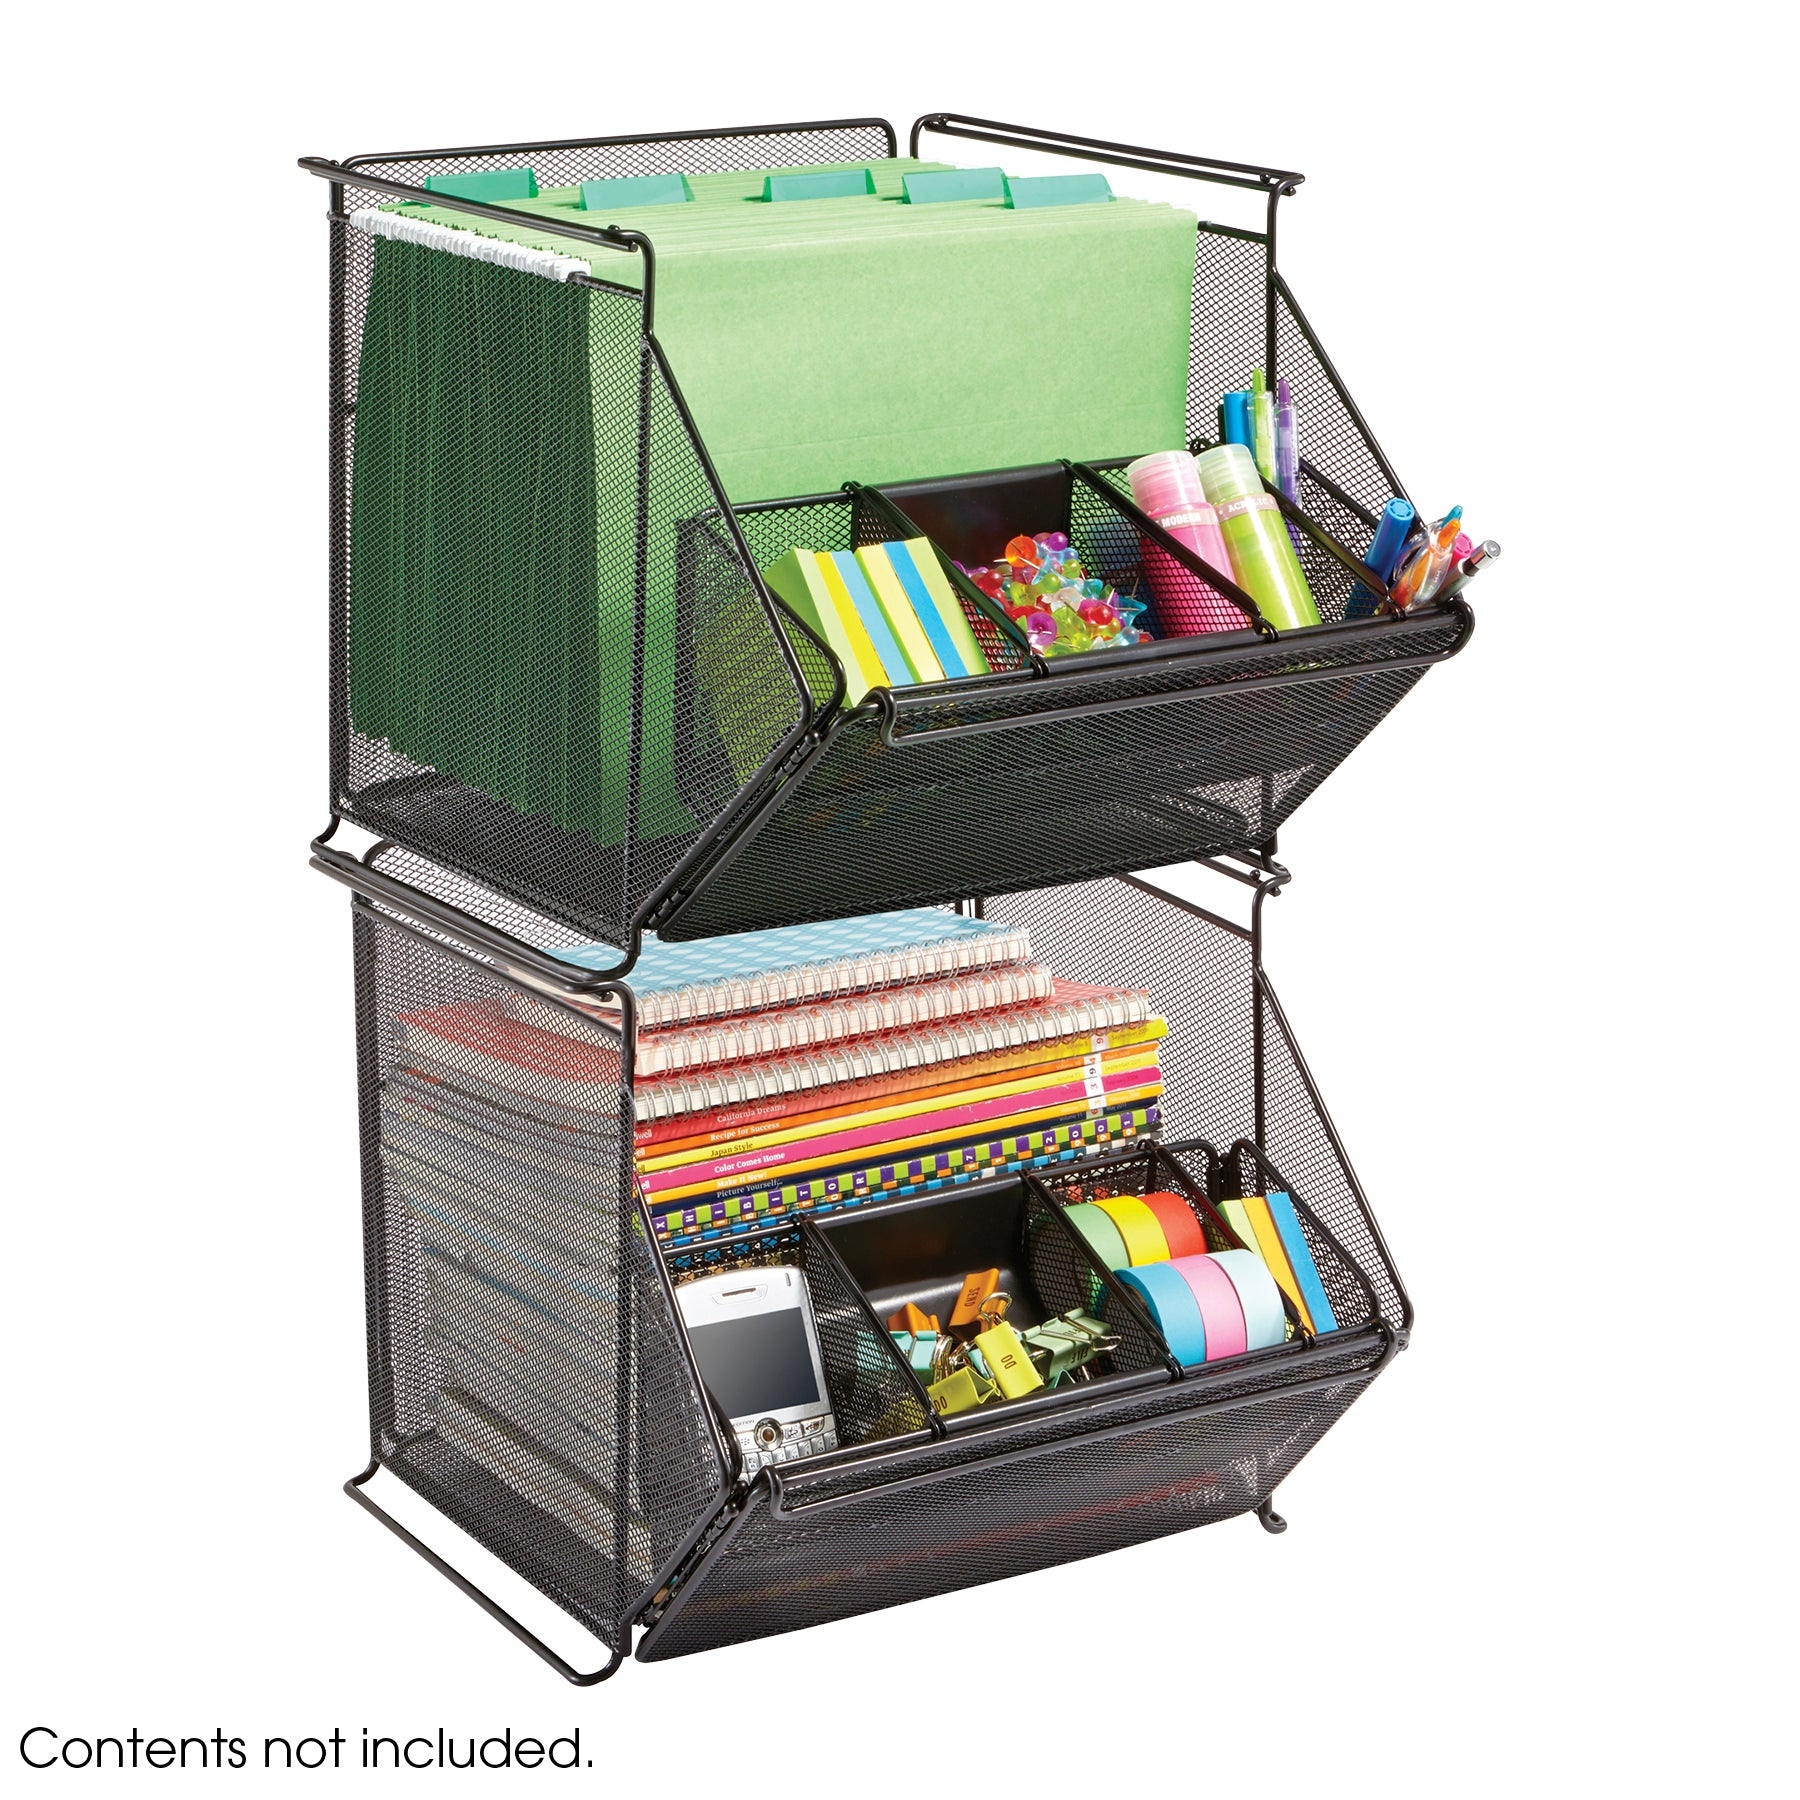 Safco Products Onyx™ Stackable Mesh Storage Bins 2164bl